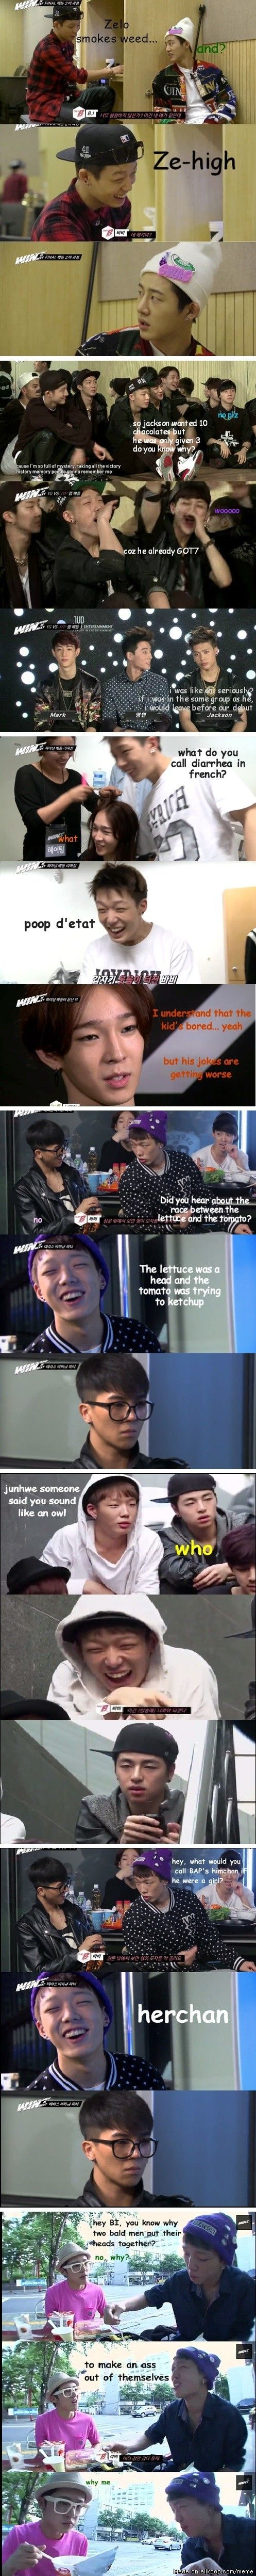 Puahahah Bobby you kill Mr hehehe :') Meme Center | allkpop - Bad Jokes Bobby